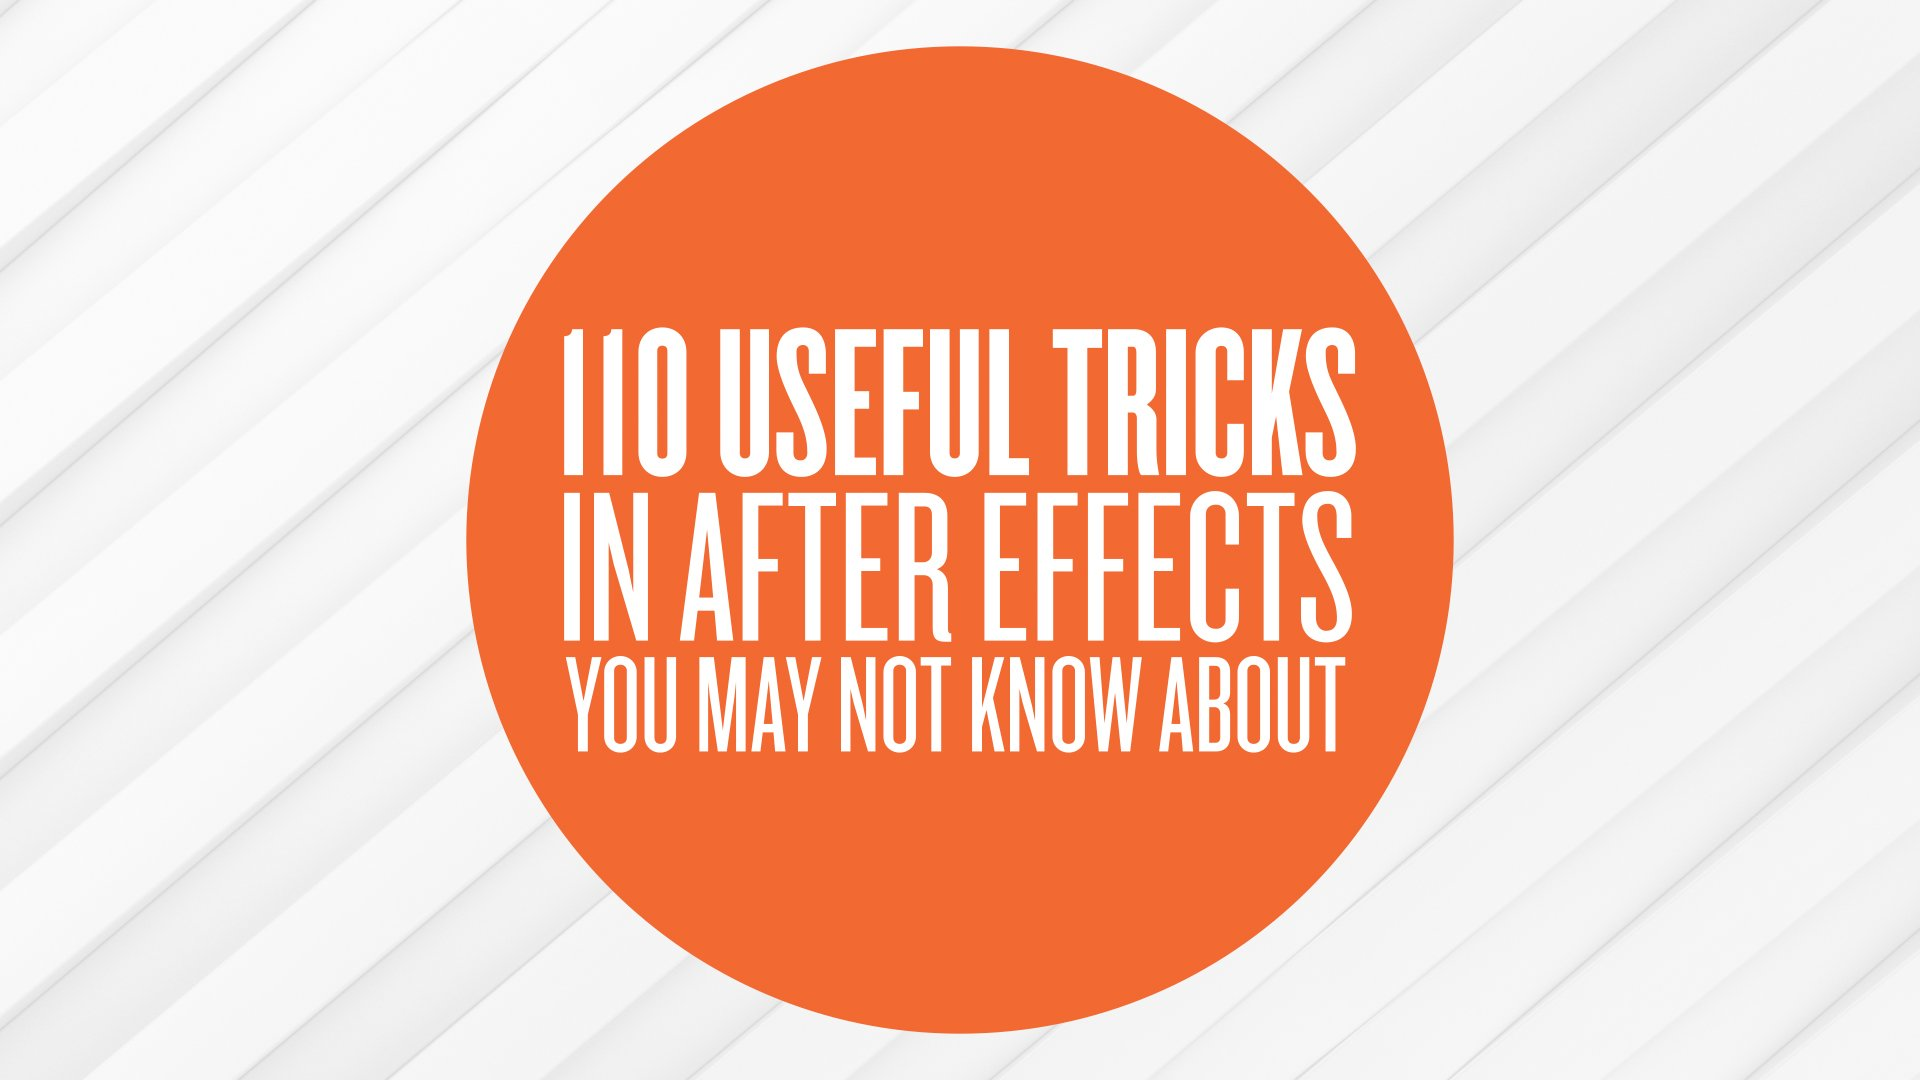 110 Useful Tricks In After Effects You May Not Know About - Ukramedia